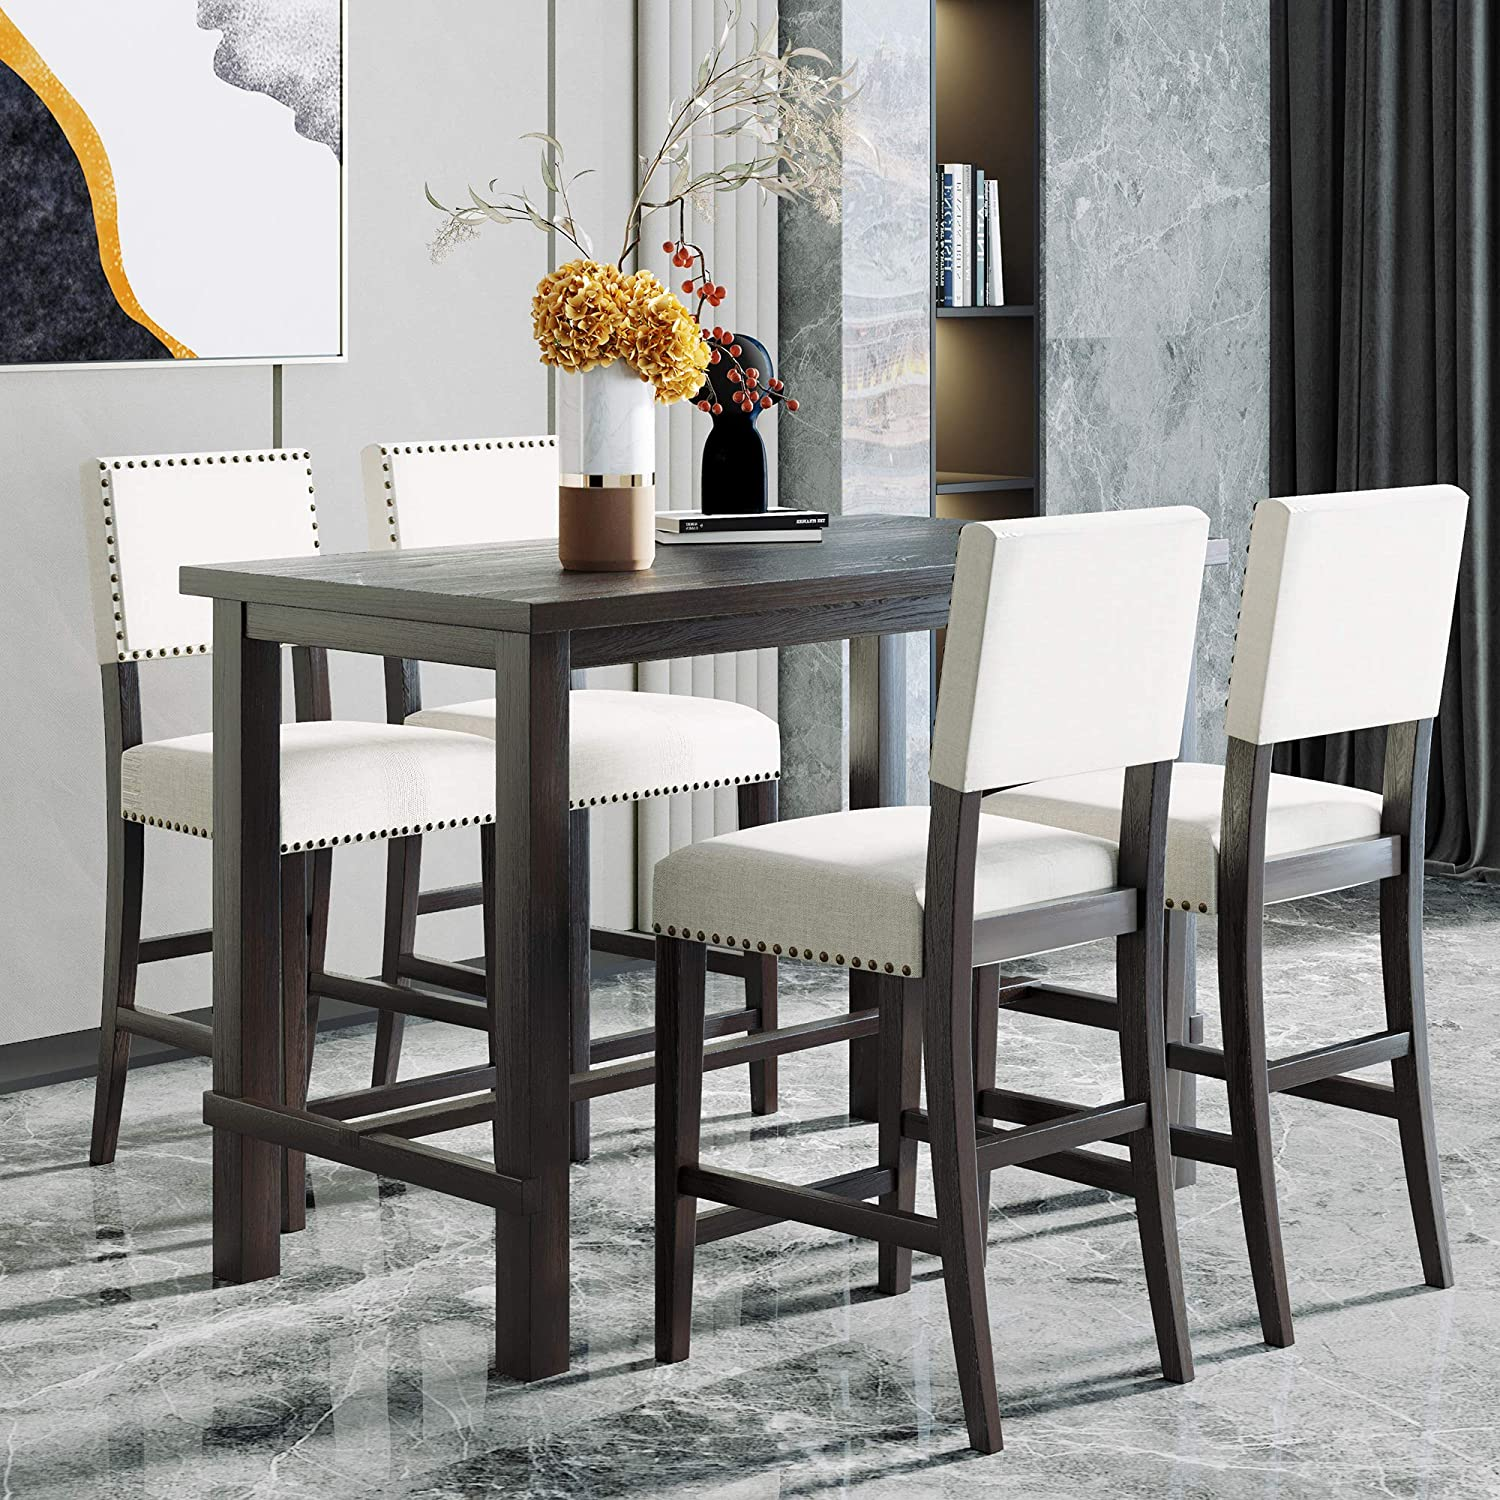 Merax 9 Piece Dining Table Set Counter Height Dining Set with Classic  Elegant Rectangle Table and 9 Padded Chairs for Kitchen Dining Room,Black  and ...